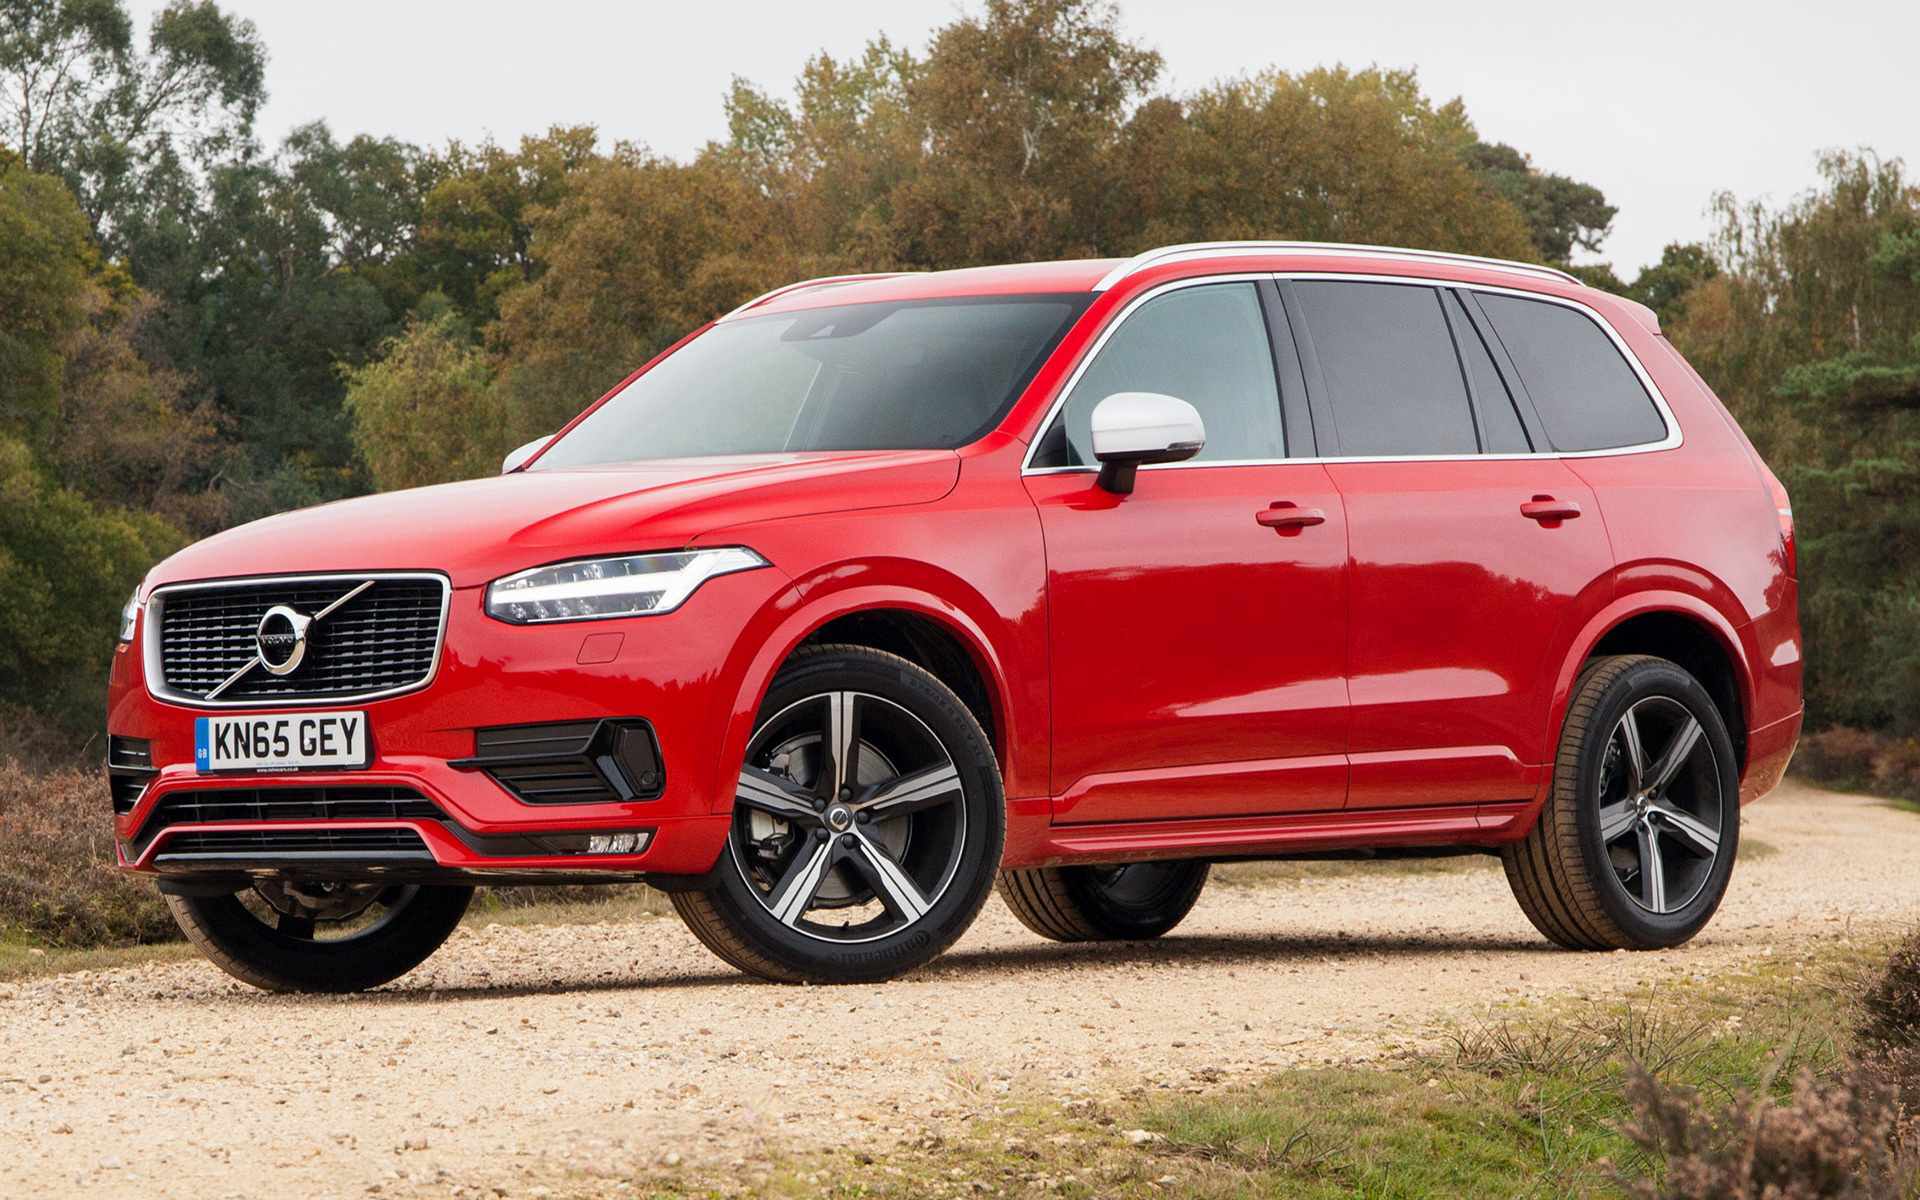 2015 Volvo XC90 R-Design (UK) - Wallpapers and HD Images | Car Pixel